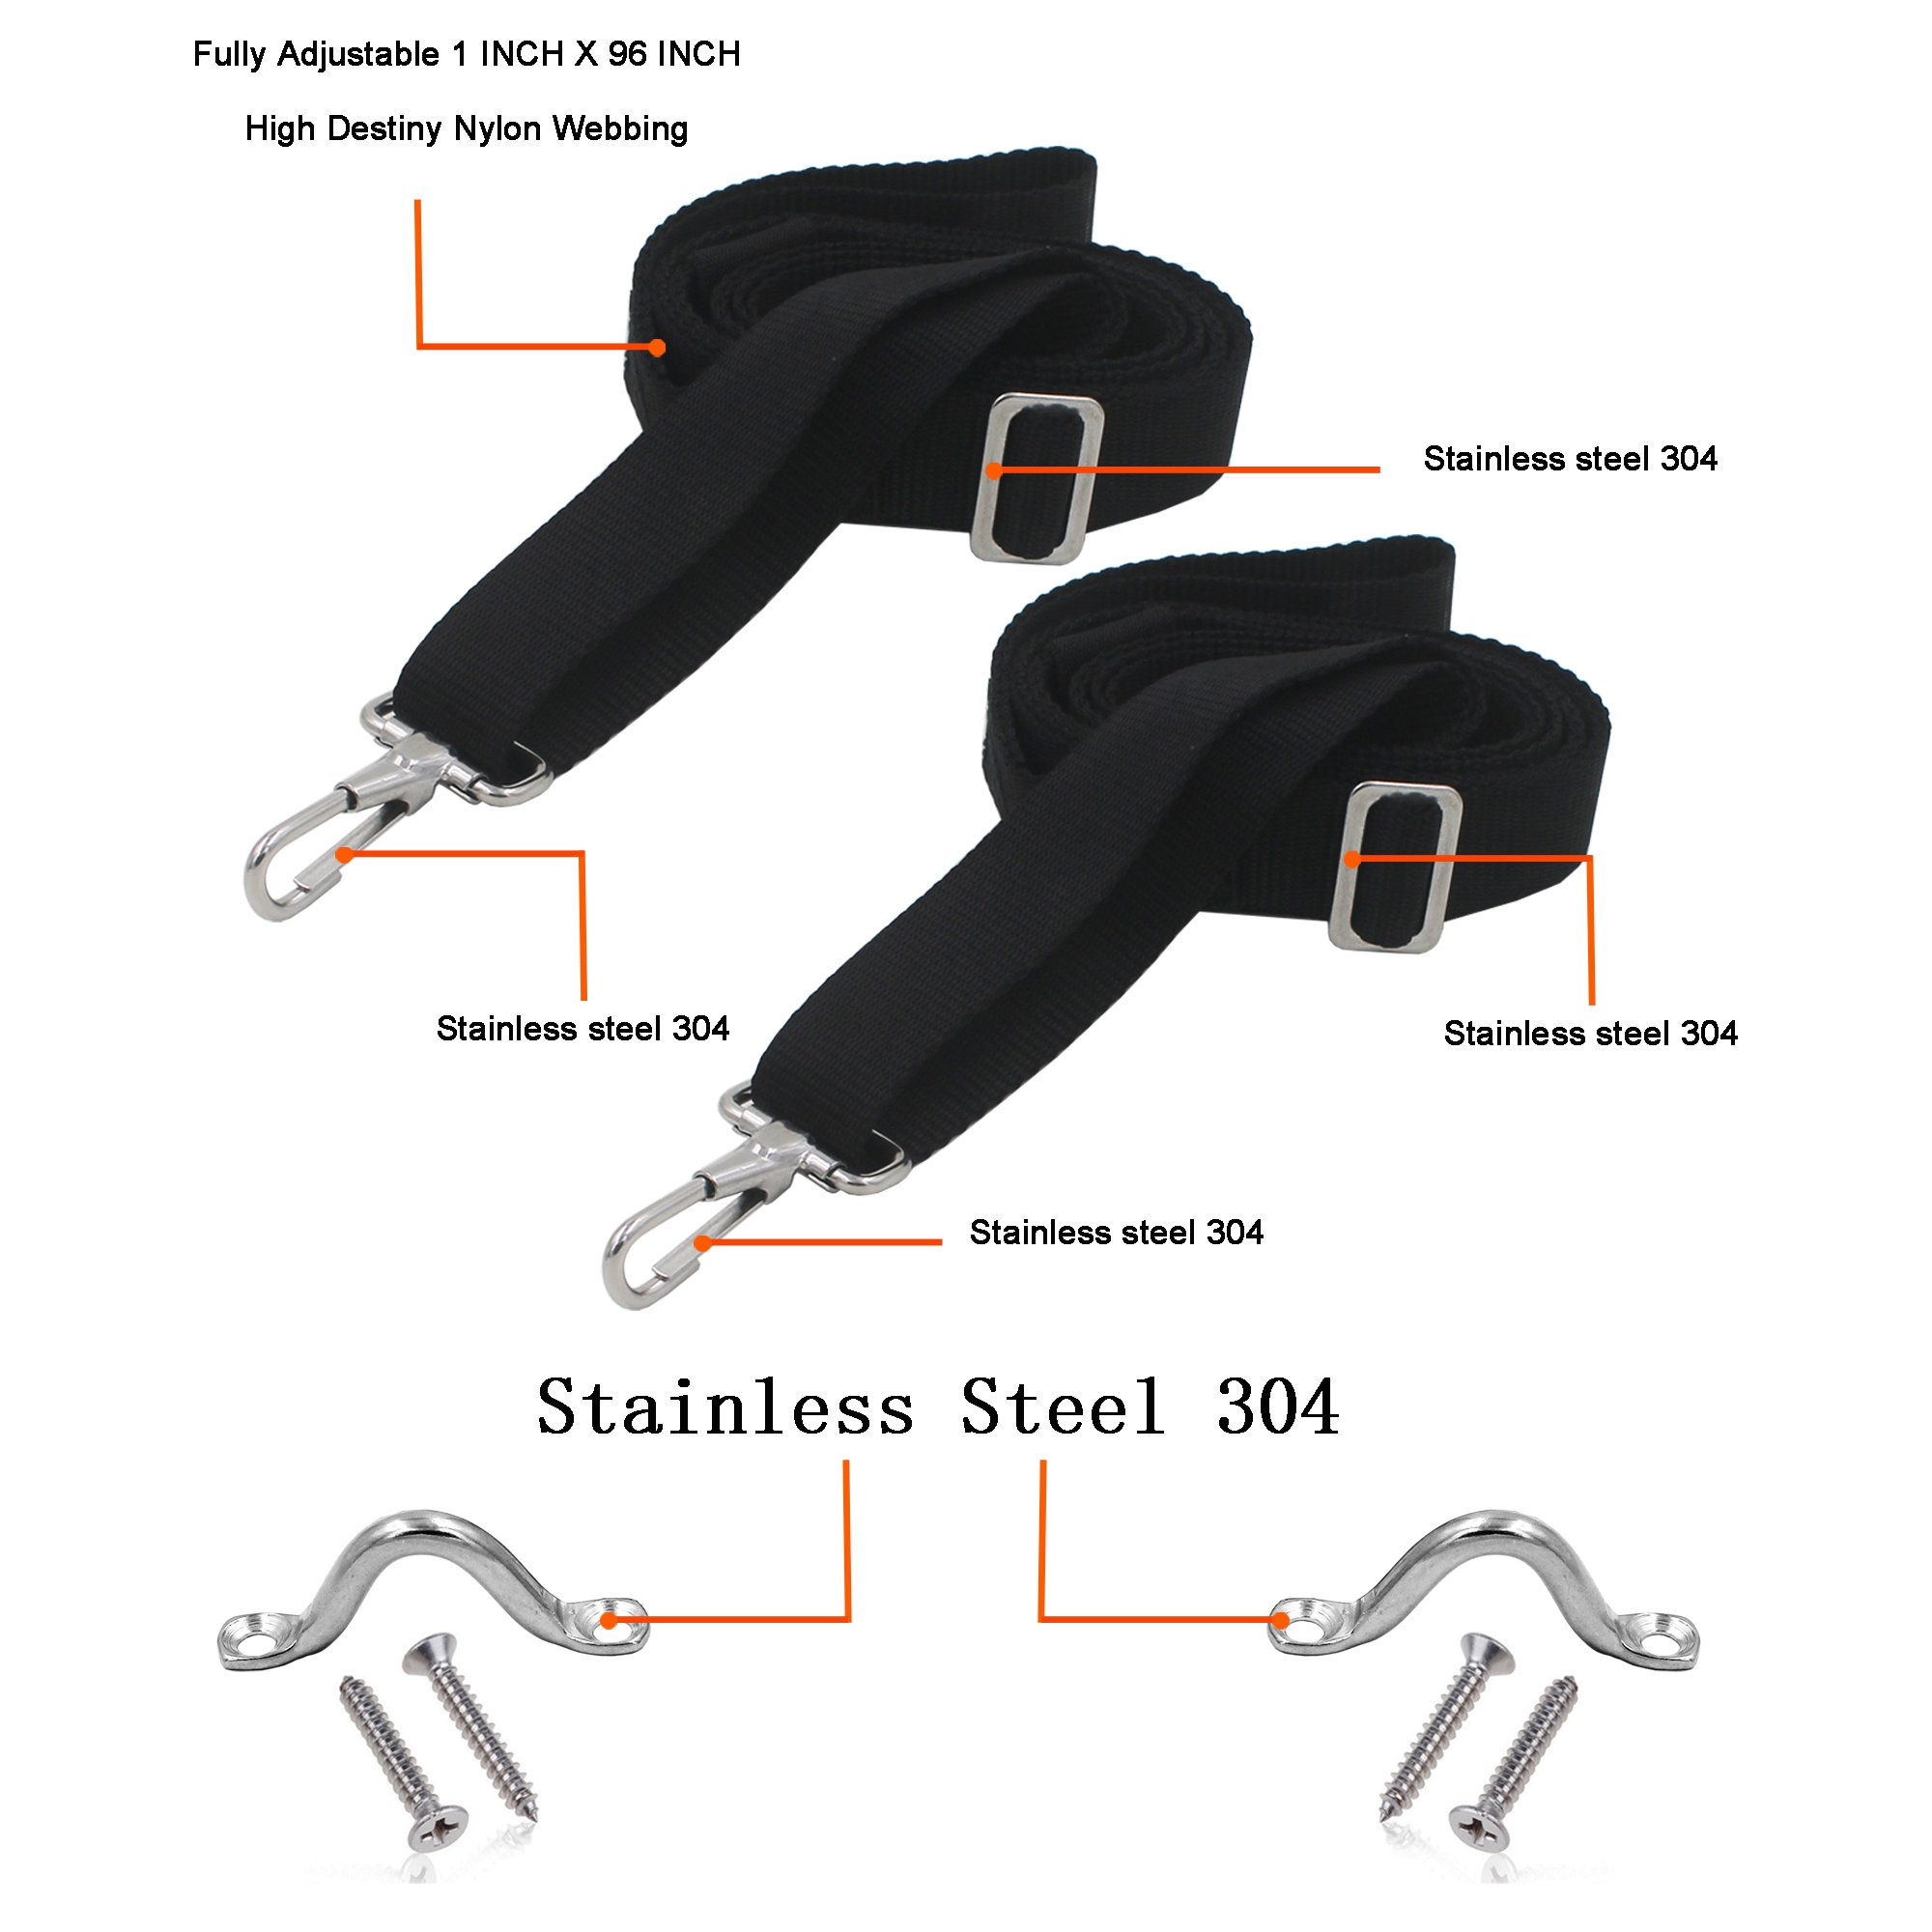 YYST Bimini Top Strap Boat Top Strap Bimini Awning Straps W/Stainless Steel Pad Eyes and Hardwares by YYST (Image #2)